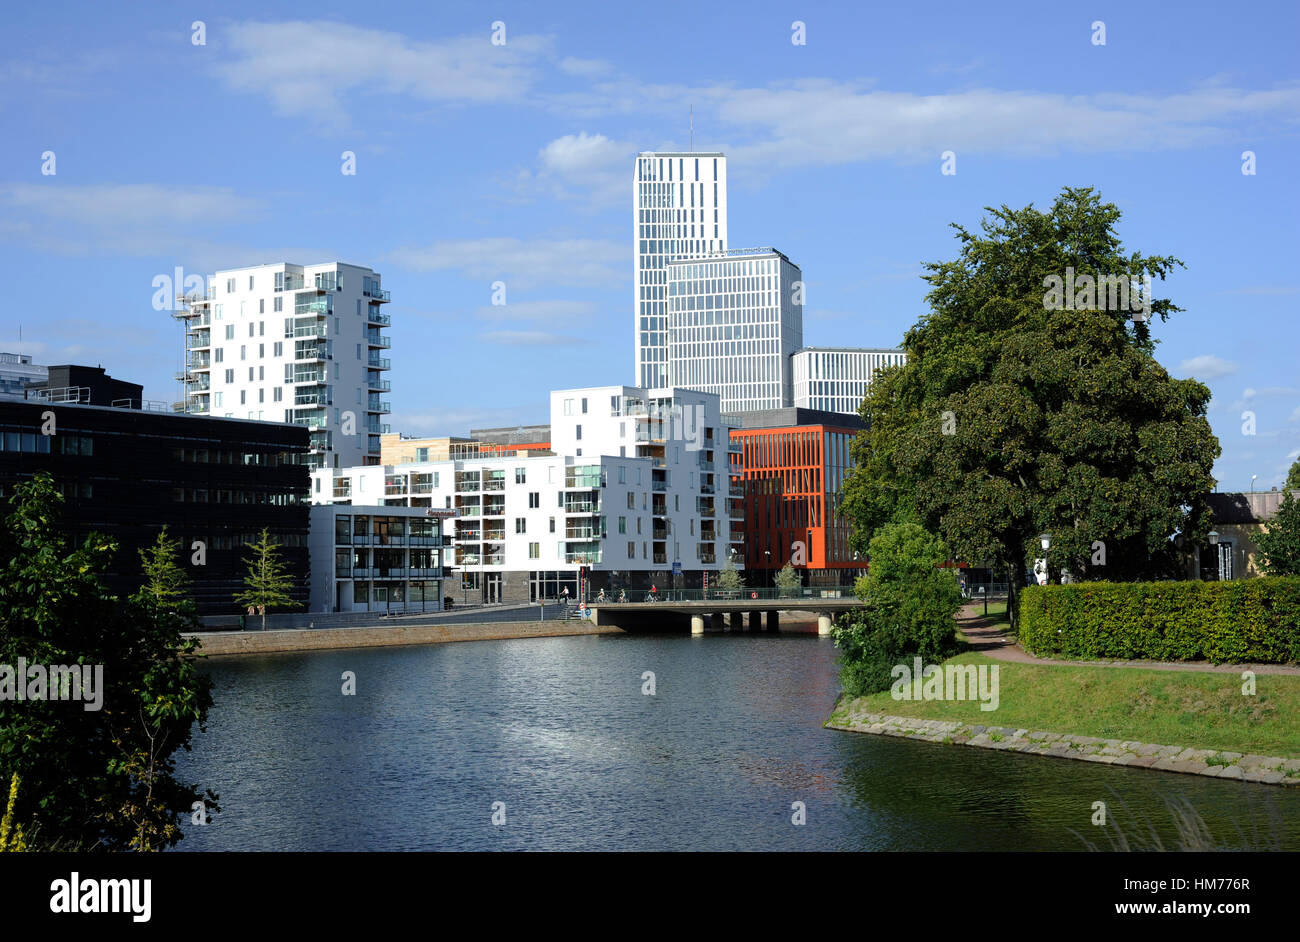 Sweden. Malmo. Modern architecture buildings. - Stock Image